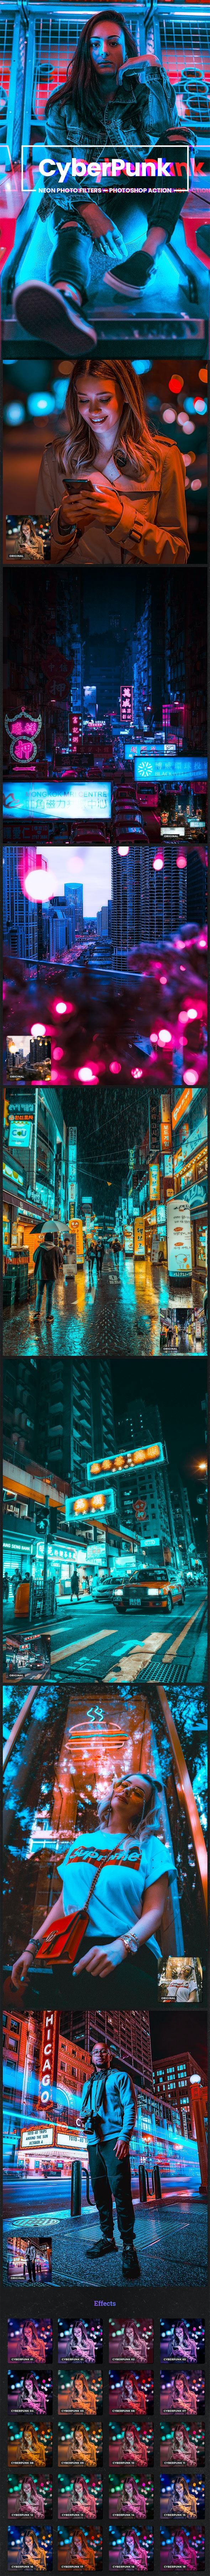 CyberPunk Neon Photo Filters Photoshop Action - Photo Effects Actions